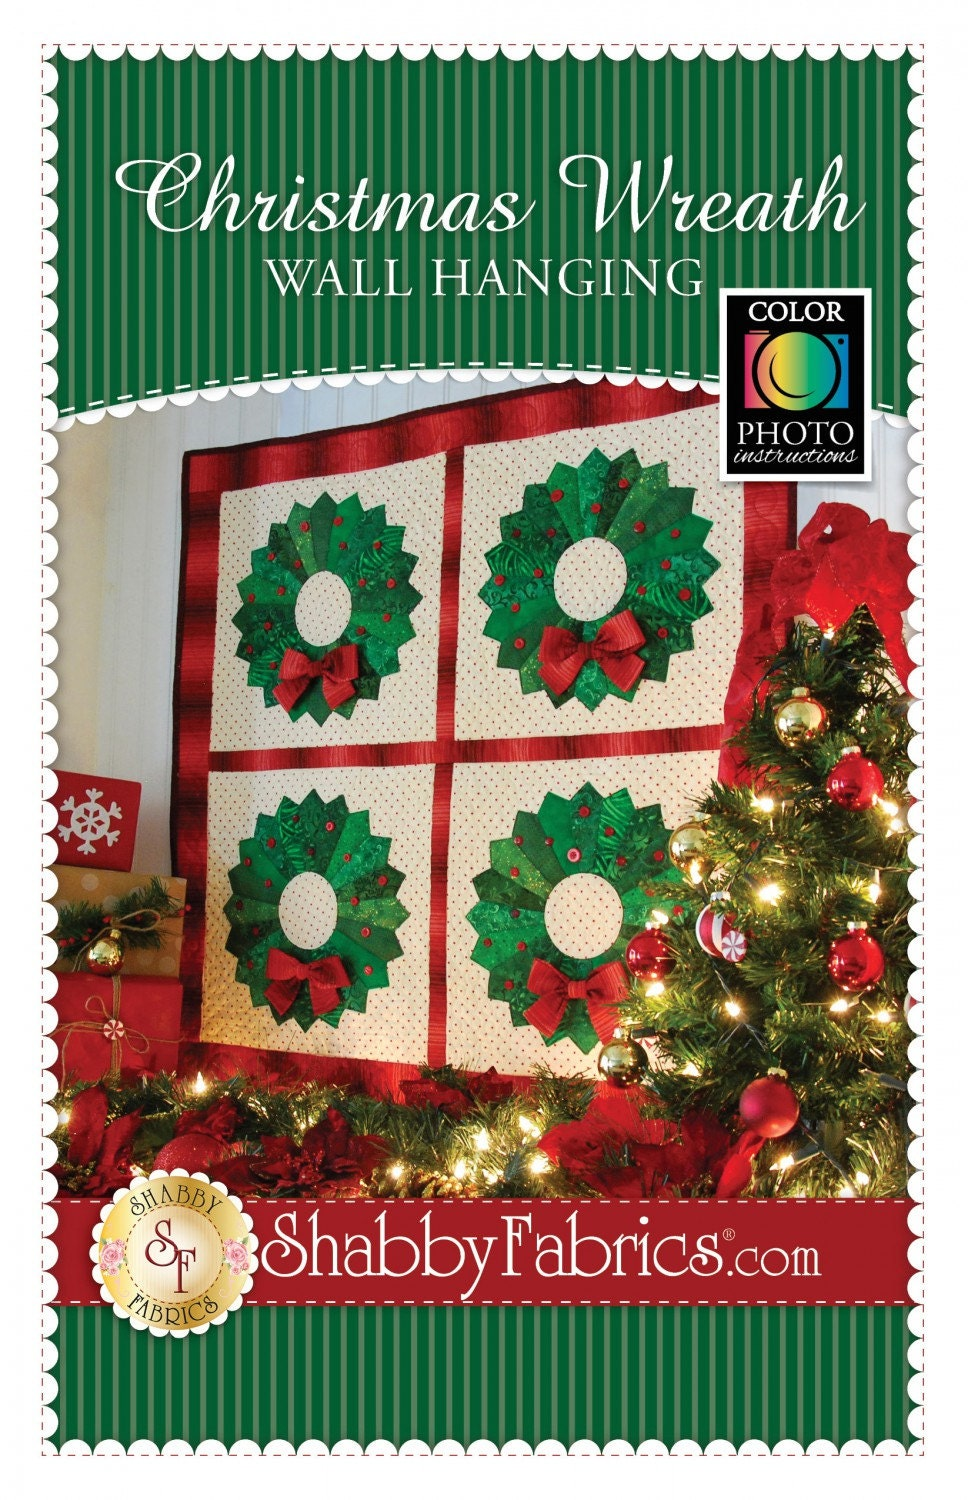 Christmas wreath quilt wall hanging pattern from shabby